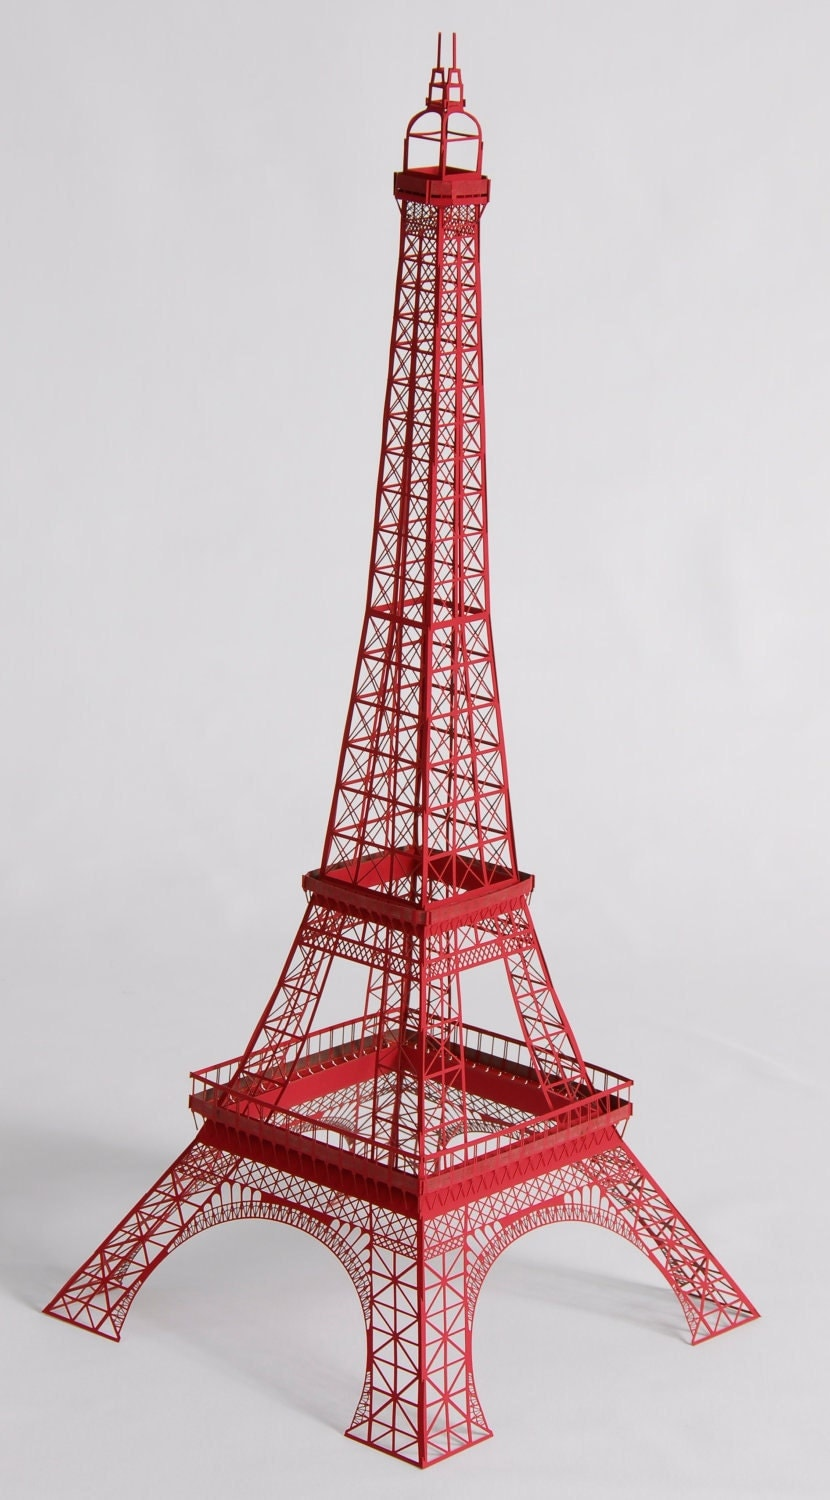 22 papercraft red eiffel tower model with full for Eiffel tower model template